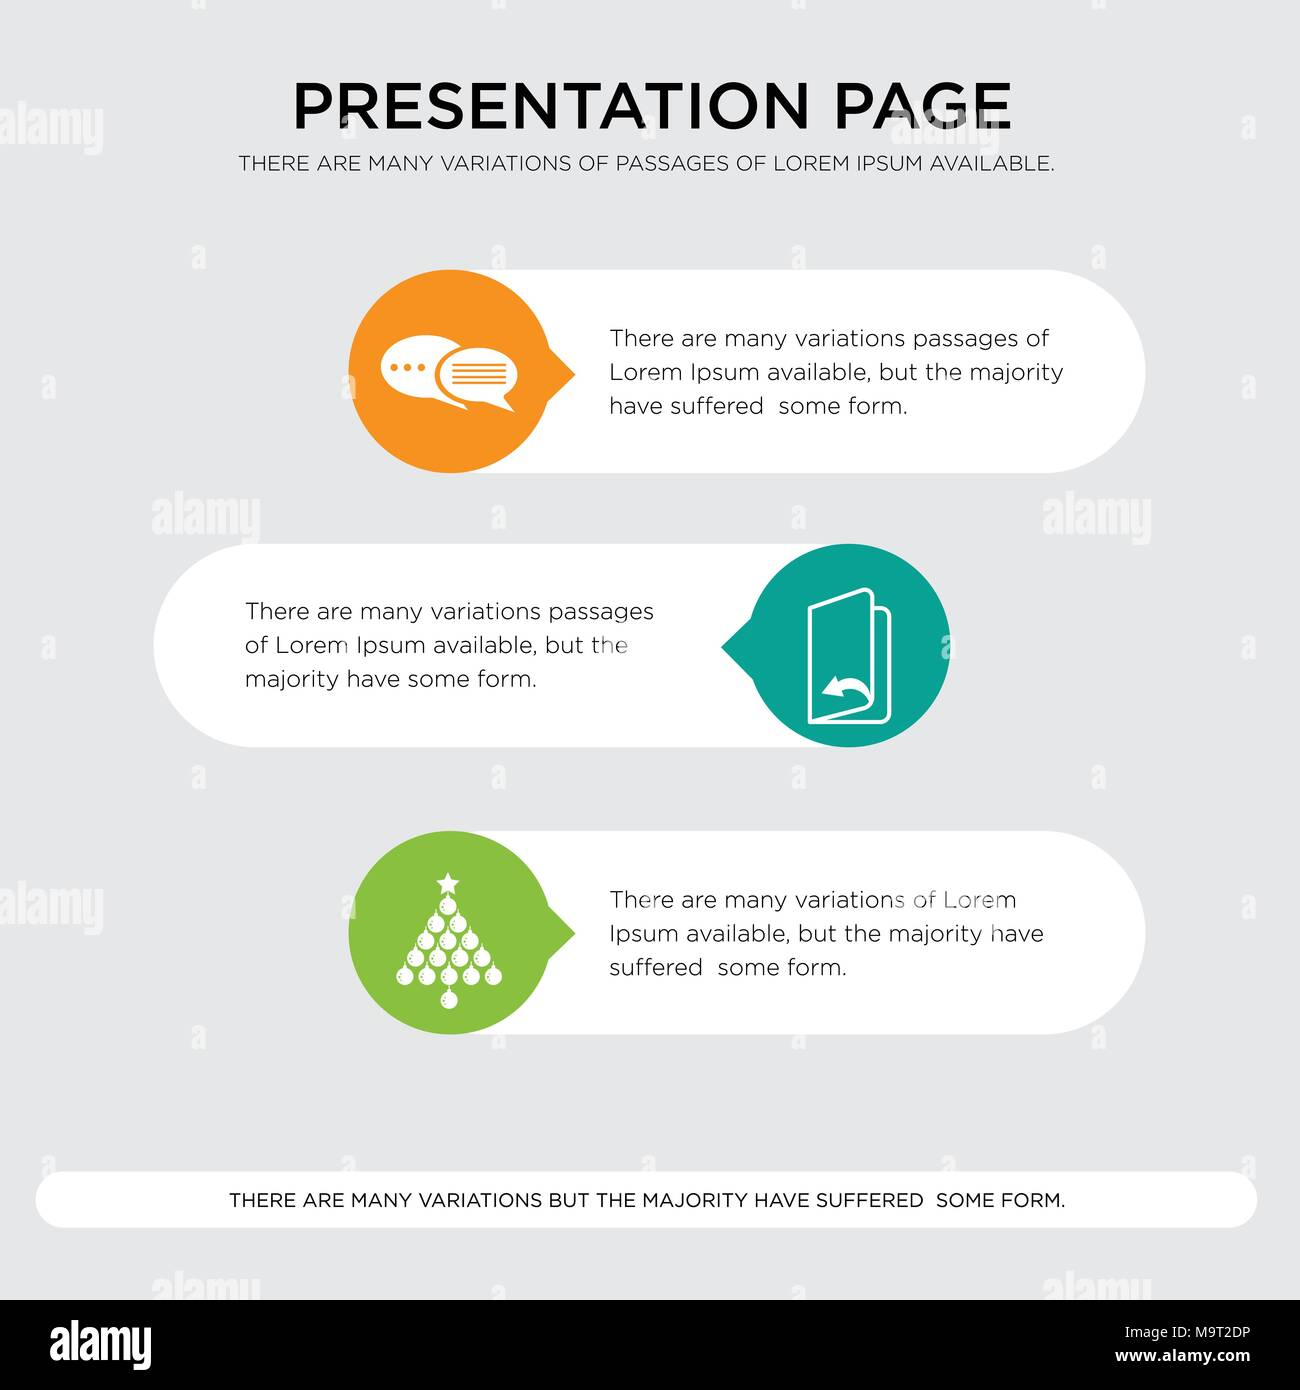 Board Presentation Template